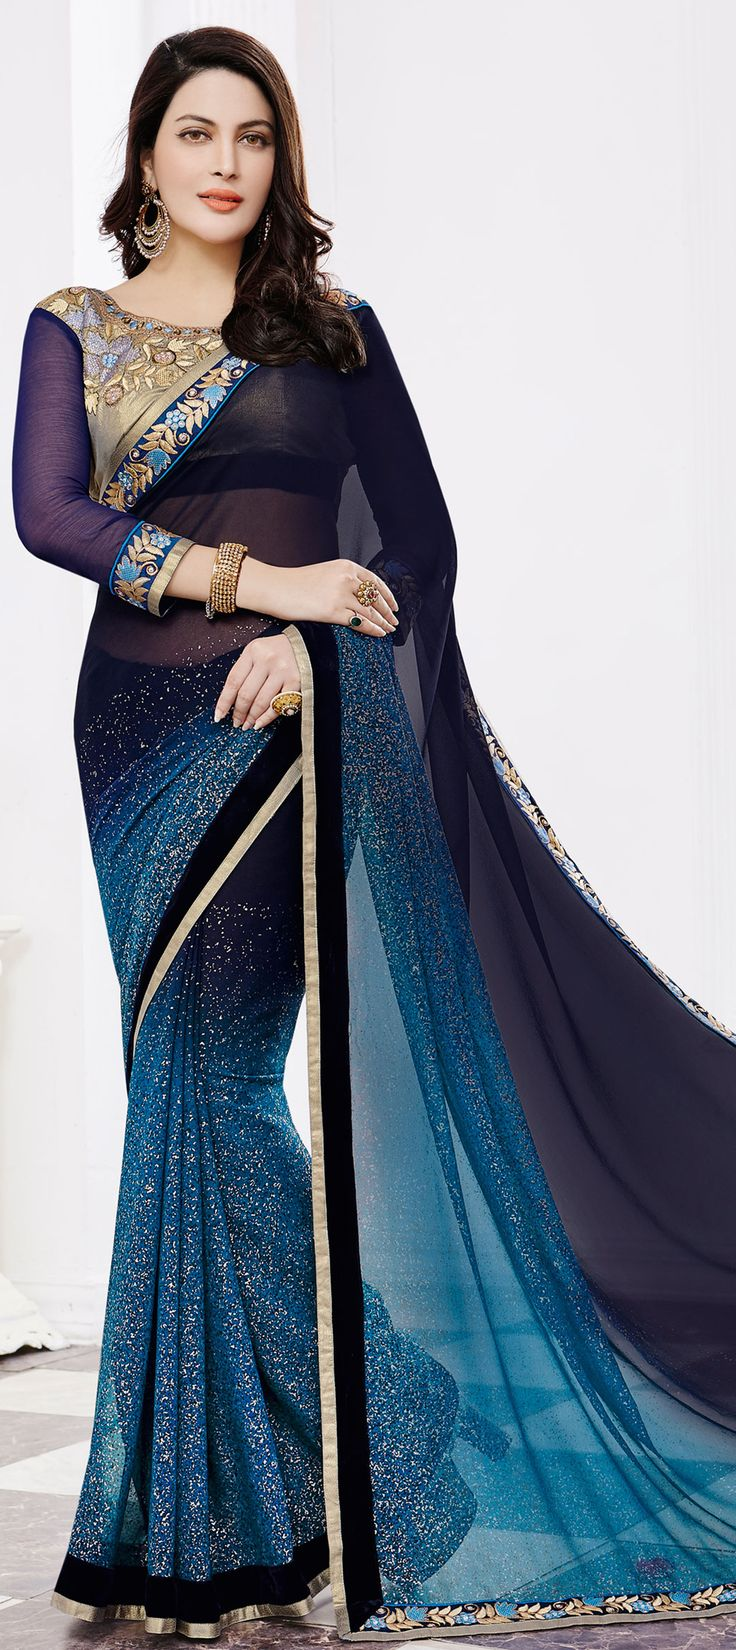 181460: Blue color family Embroidered Sarees,Party Wear Sarees with matching unstitched blouse.